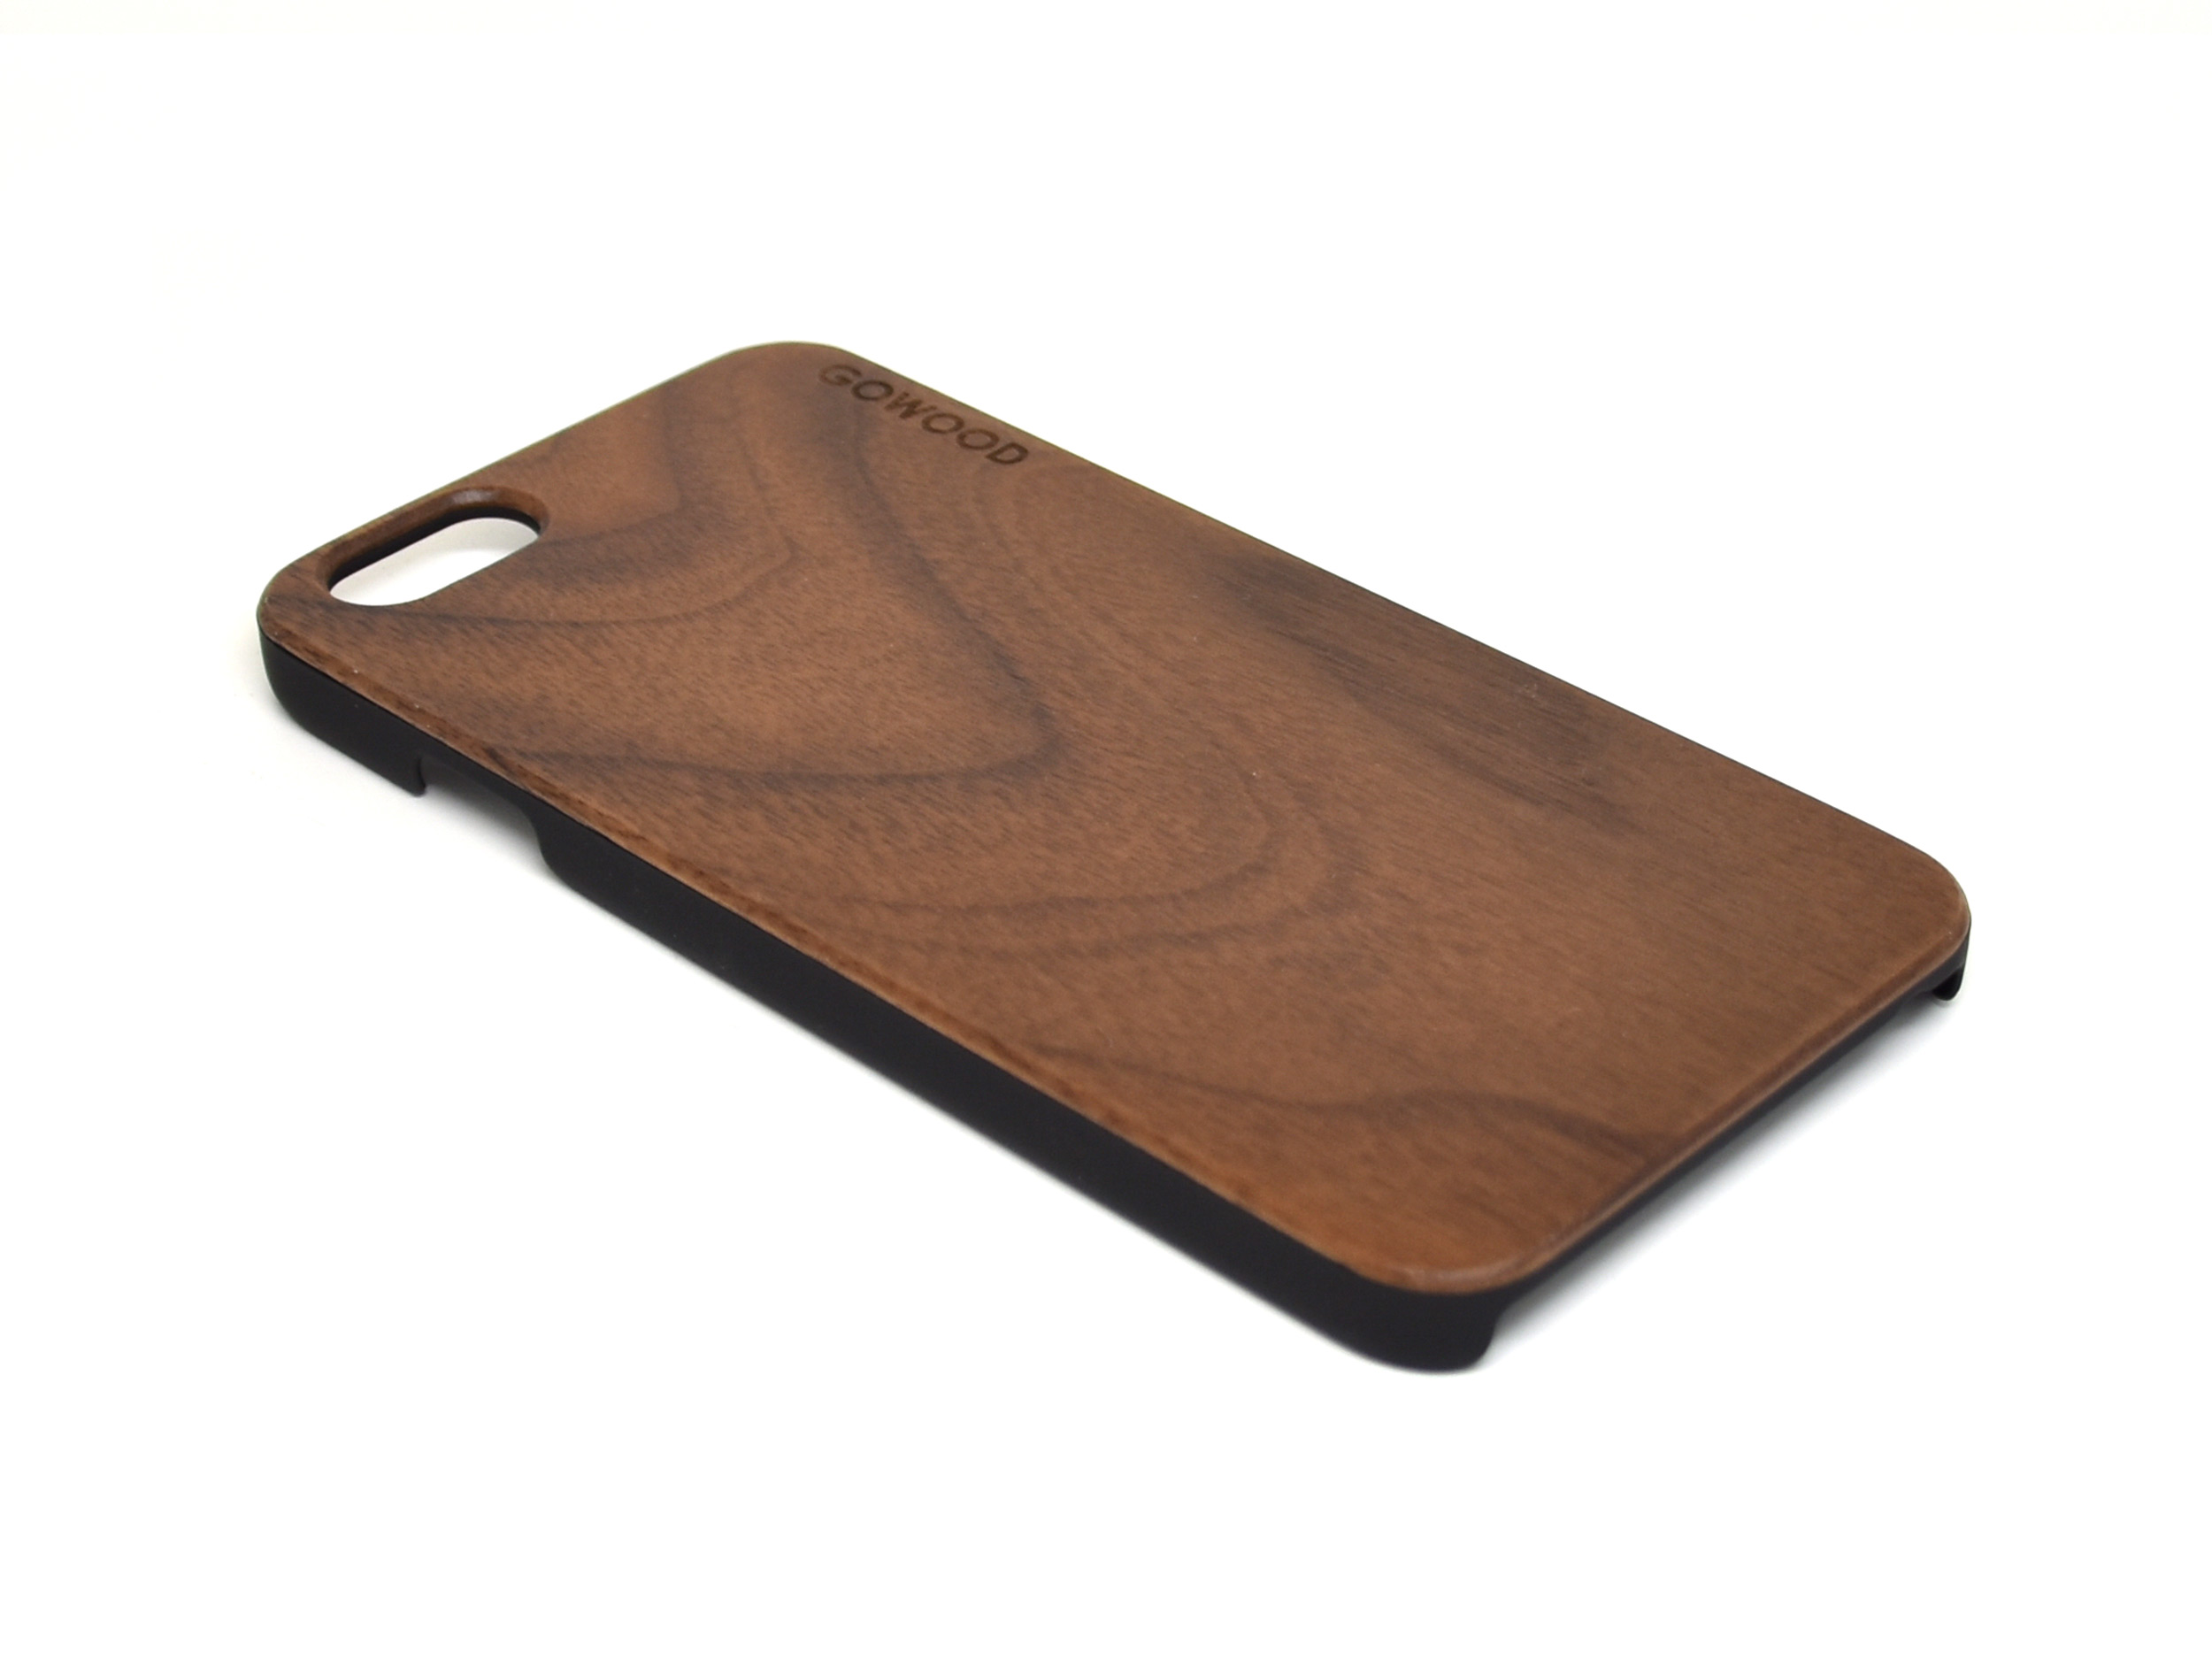 Iphone 6 Case Walnut Wood With Polycarbonate Sides Gw